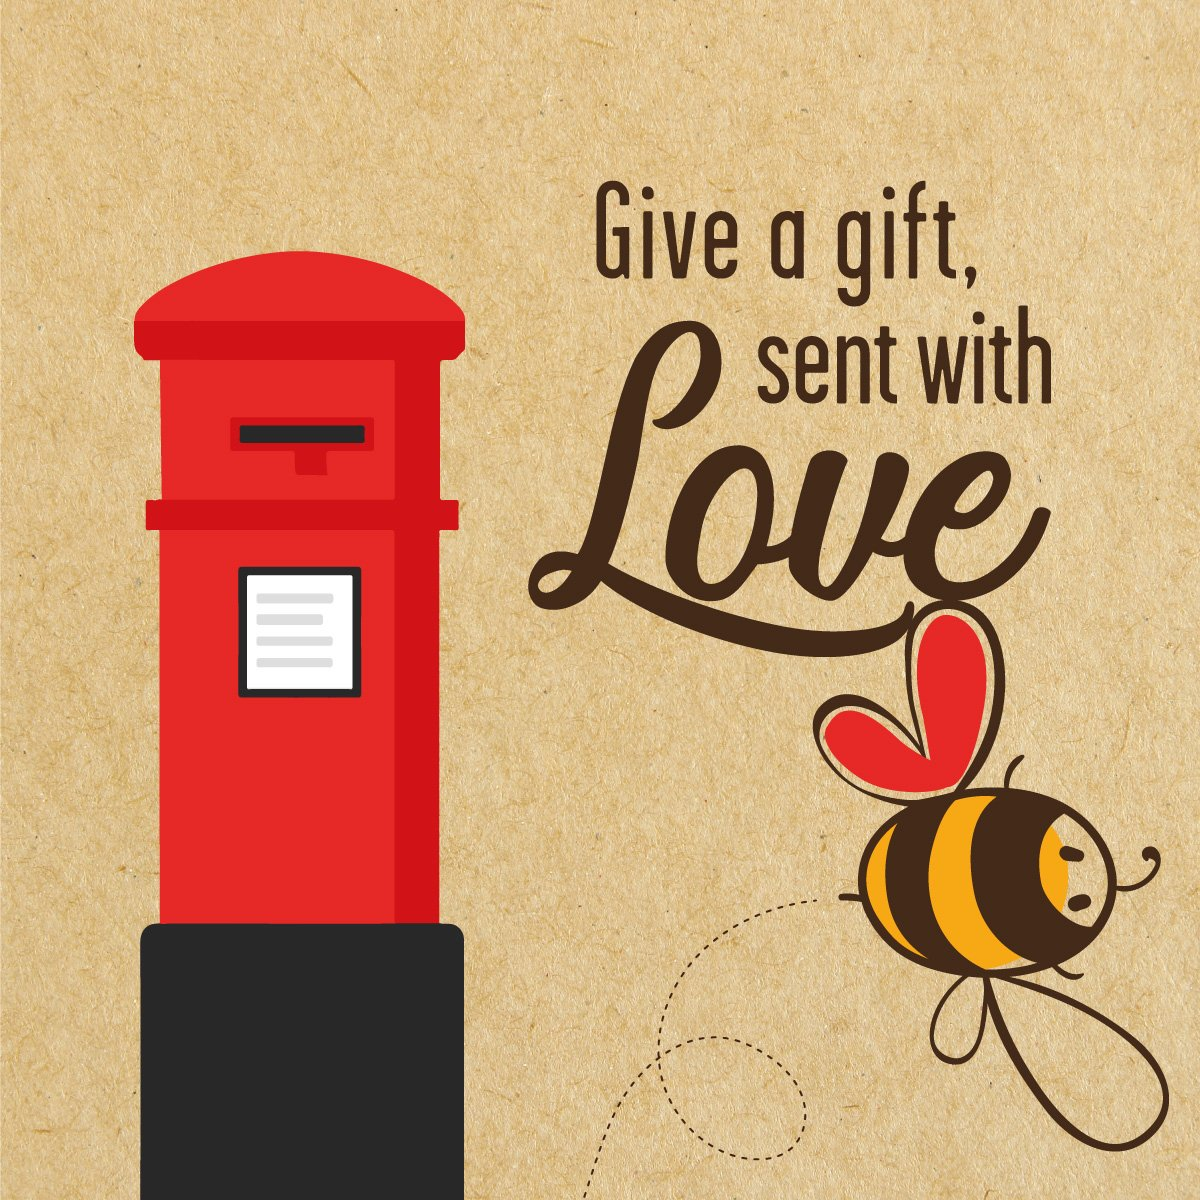 Give a gift, sent with love postbox